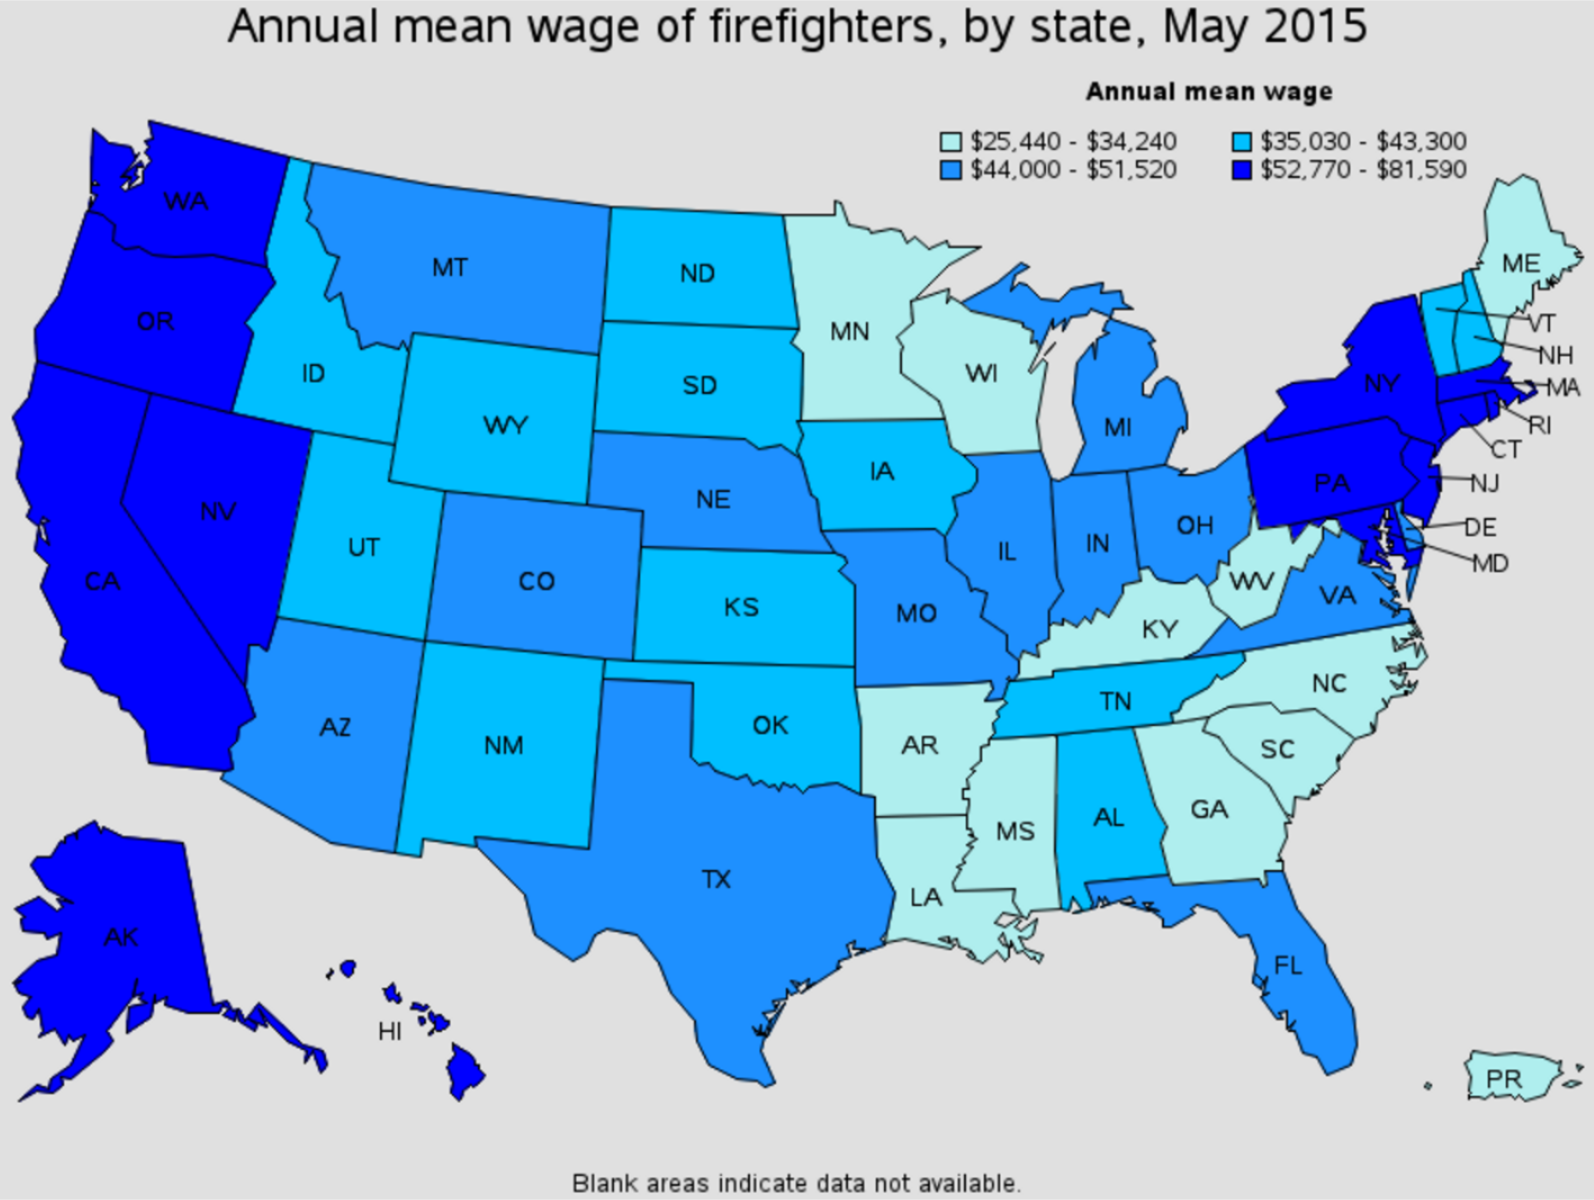 firefighter average salary by state Pomona California